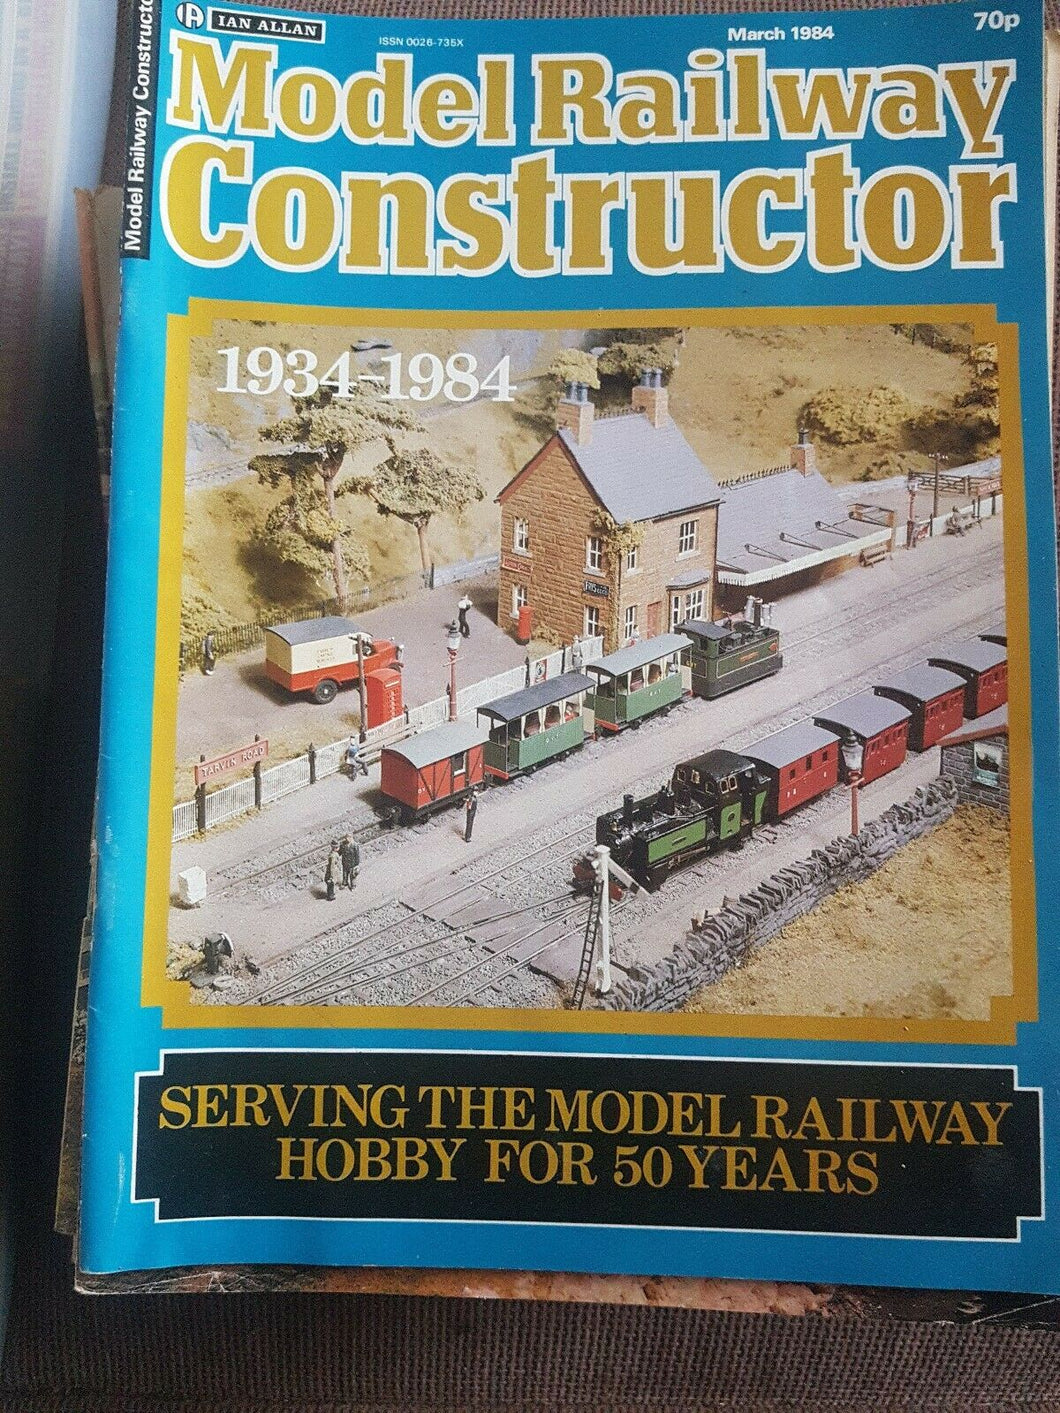 Model Railway Constructor Magazine Ian Allan. MARCH 1984